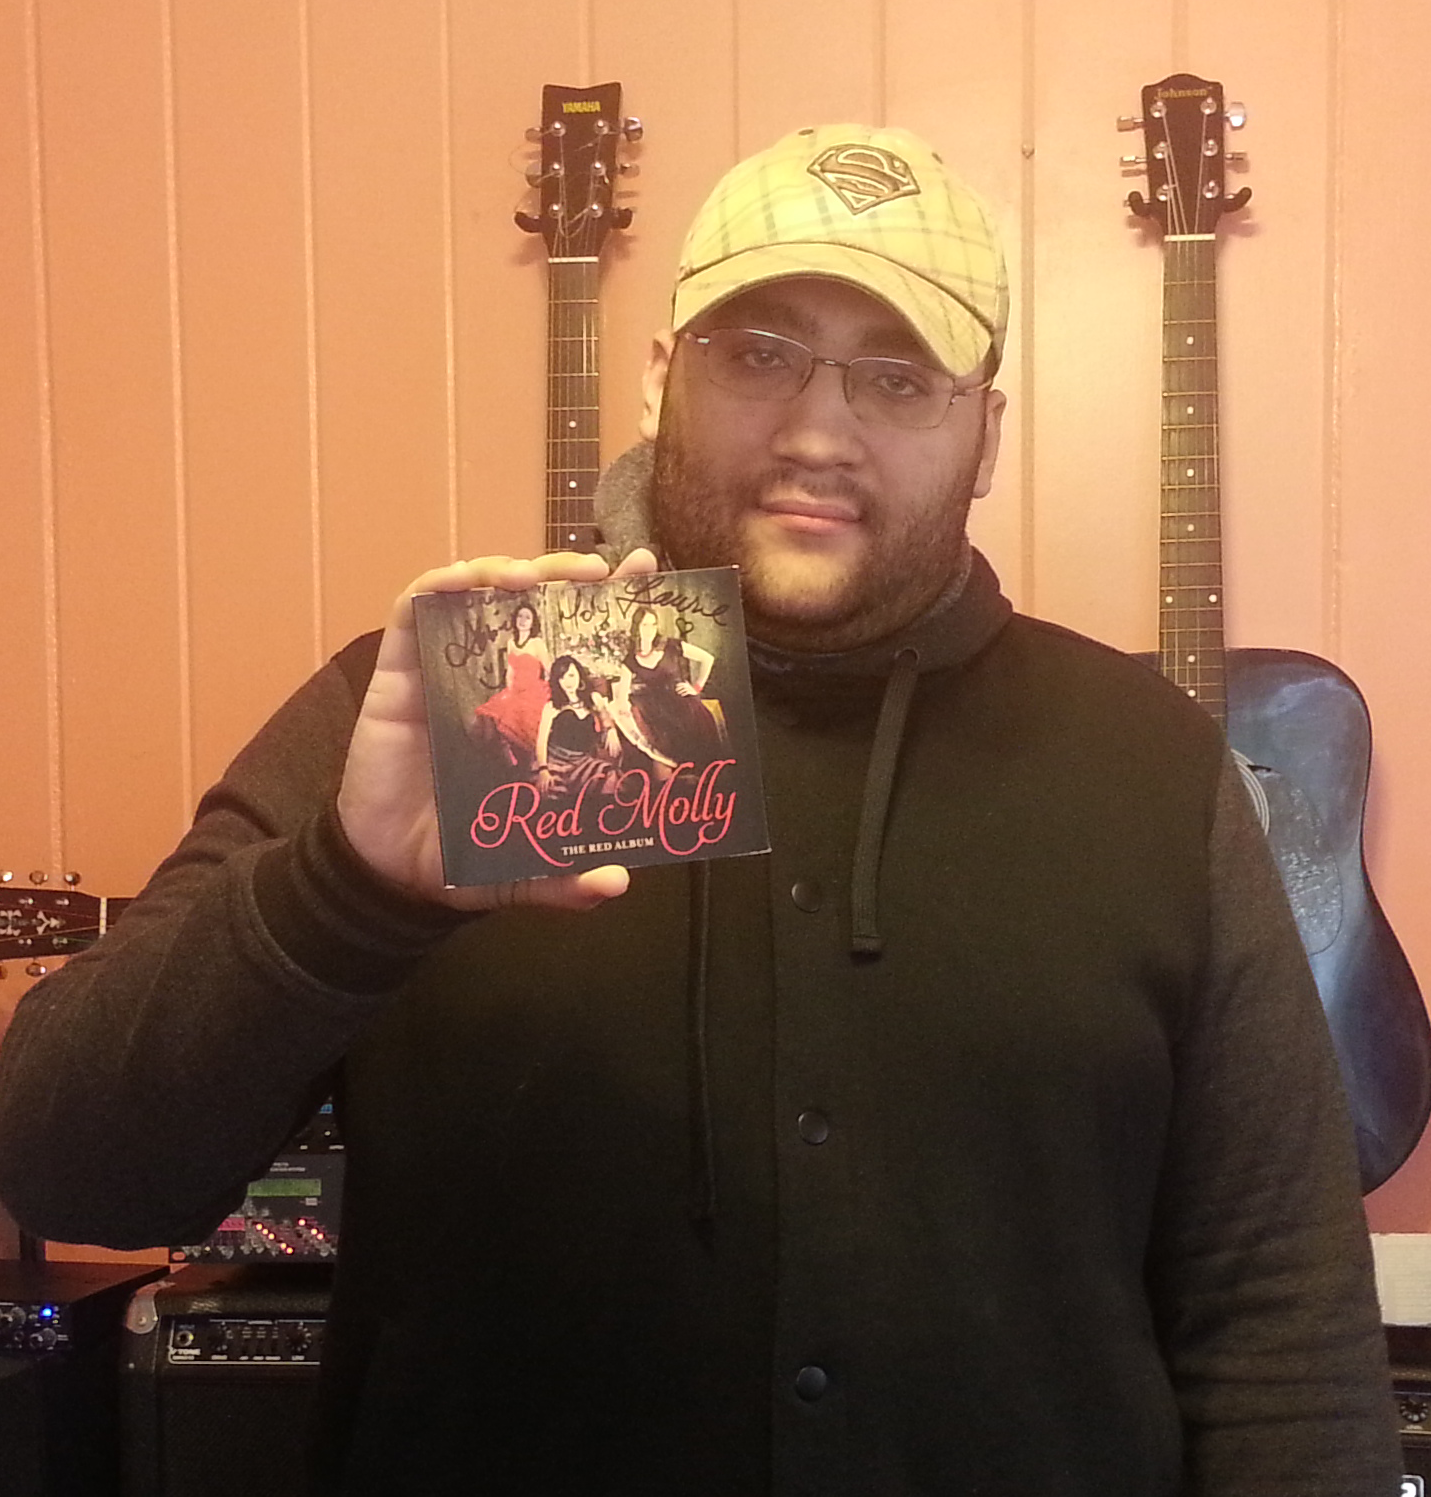 Holding my autographed copy of The Red Album